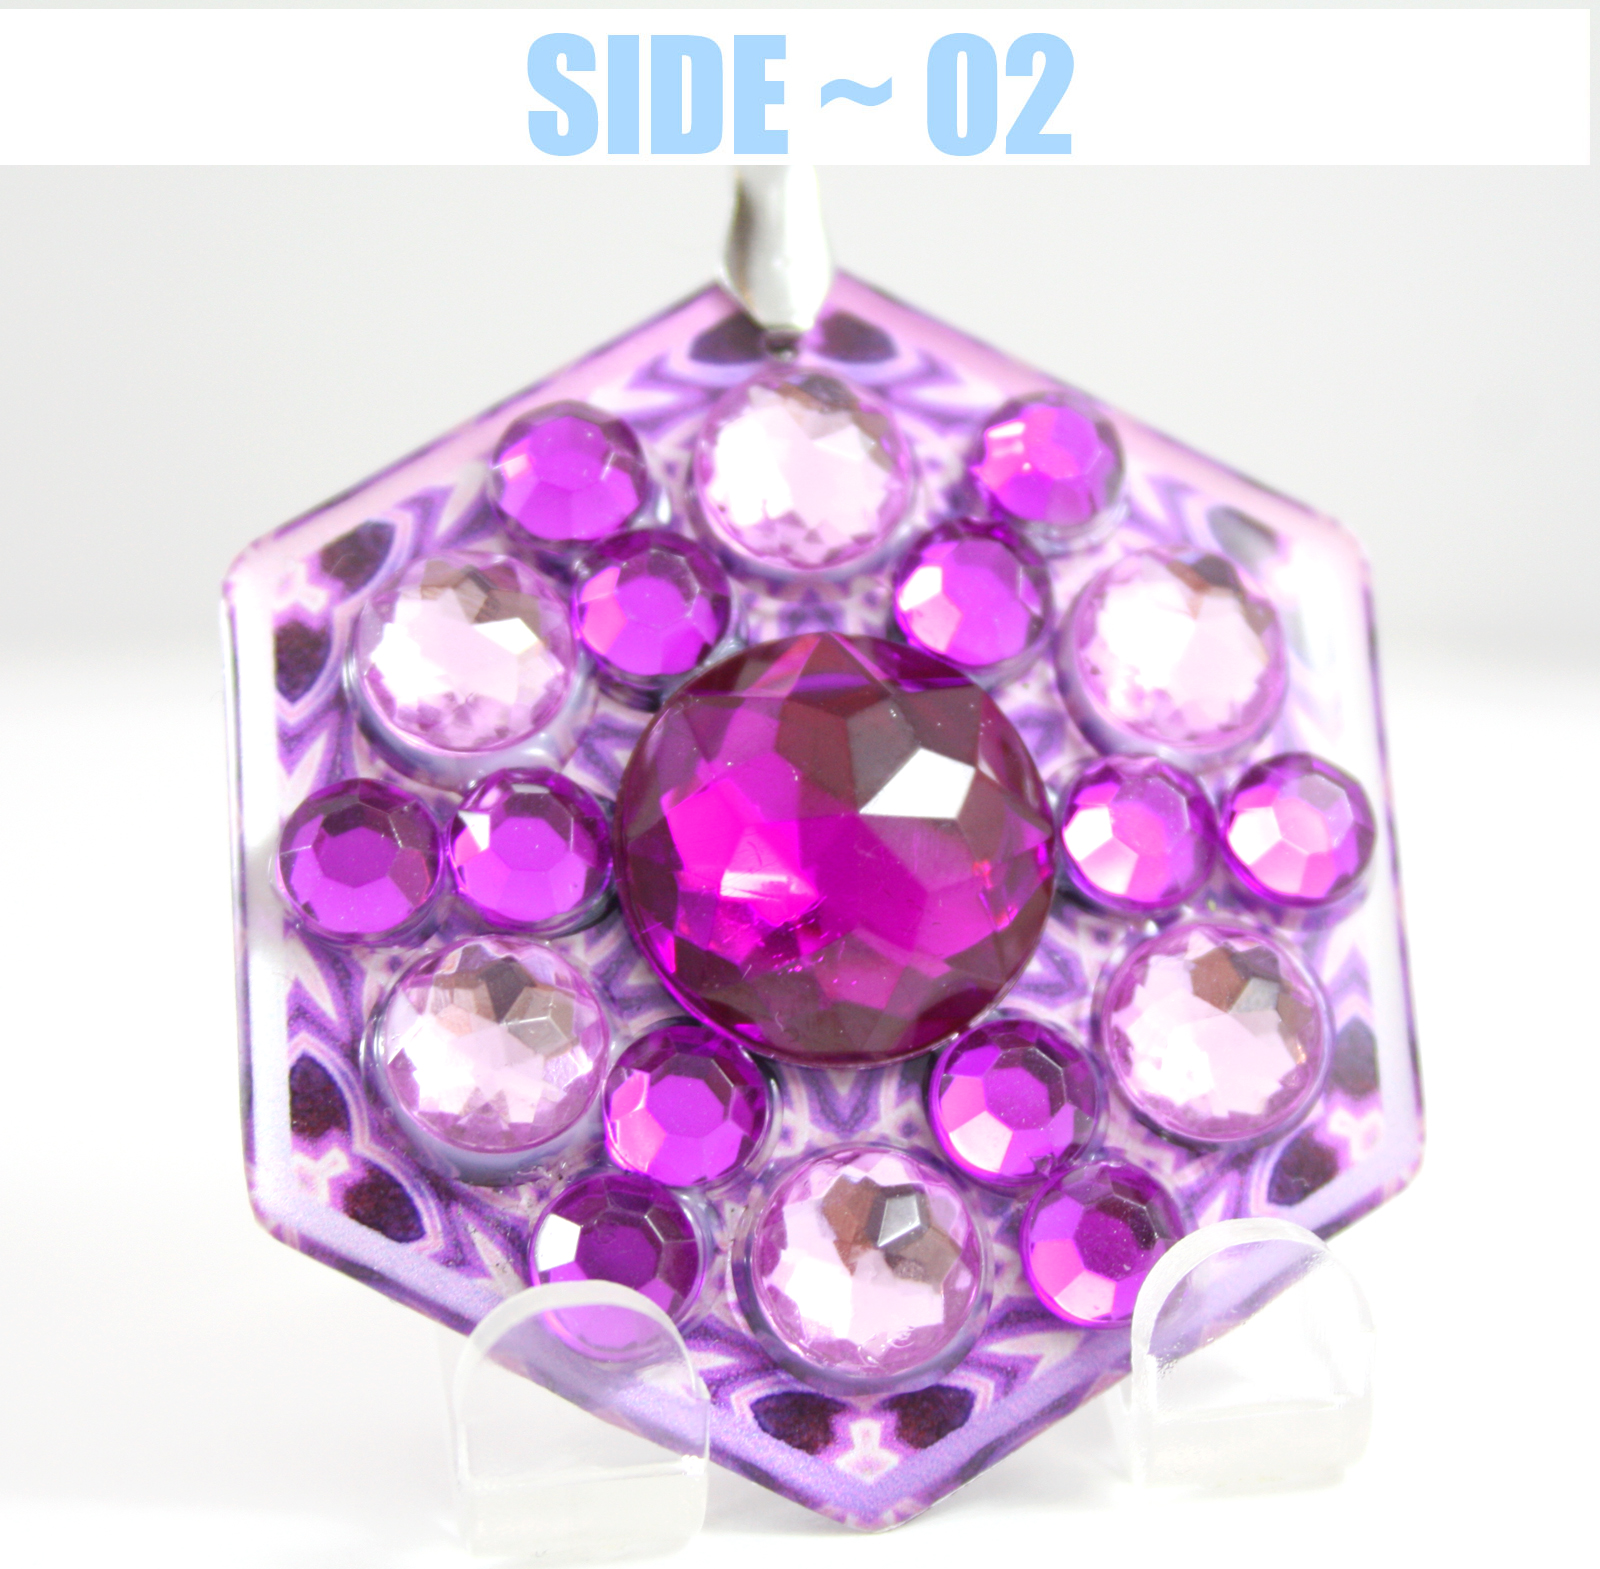 deep-ultra-violet-side-02a-new